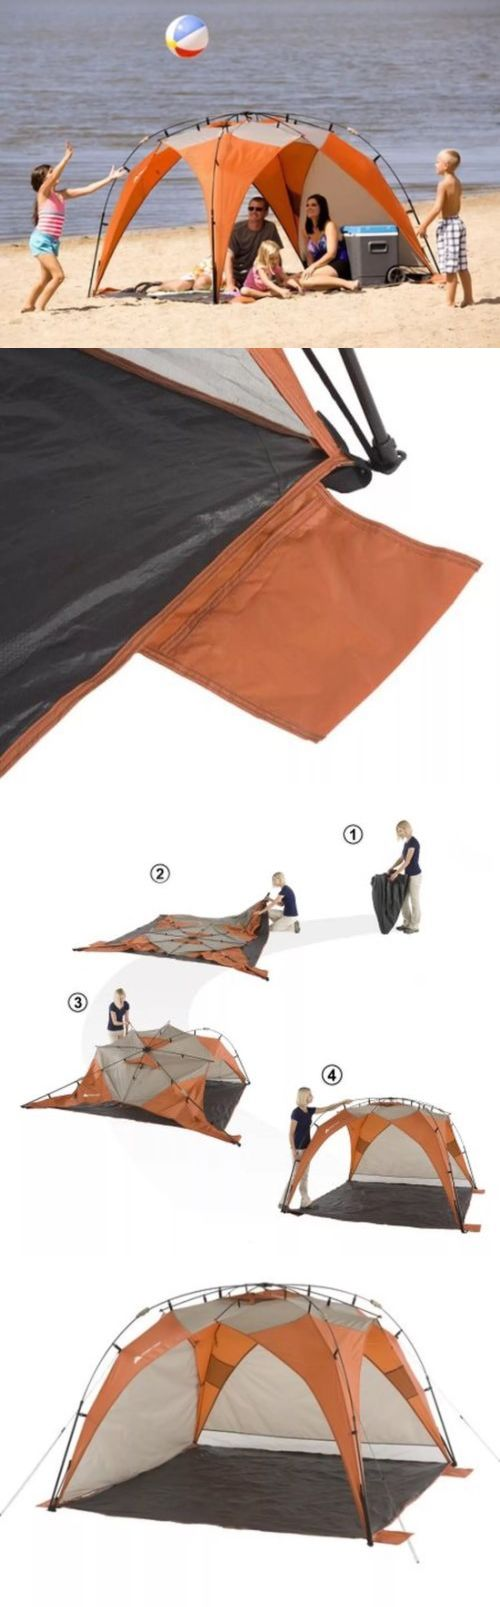 Canopies and Shelters 179011: Ozark Trail Sun Shade Tent 8X8 Instant Portable Beach Tents Outdoor Shelter New BUY IT NOW ONLY: $45.0